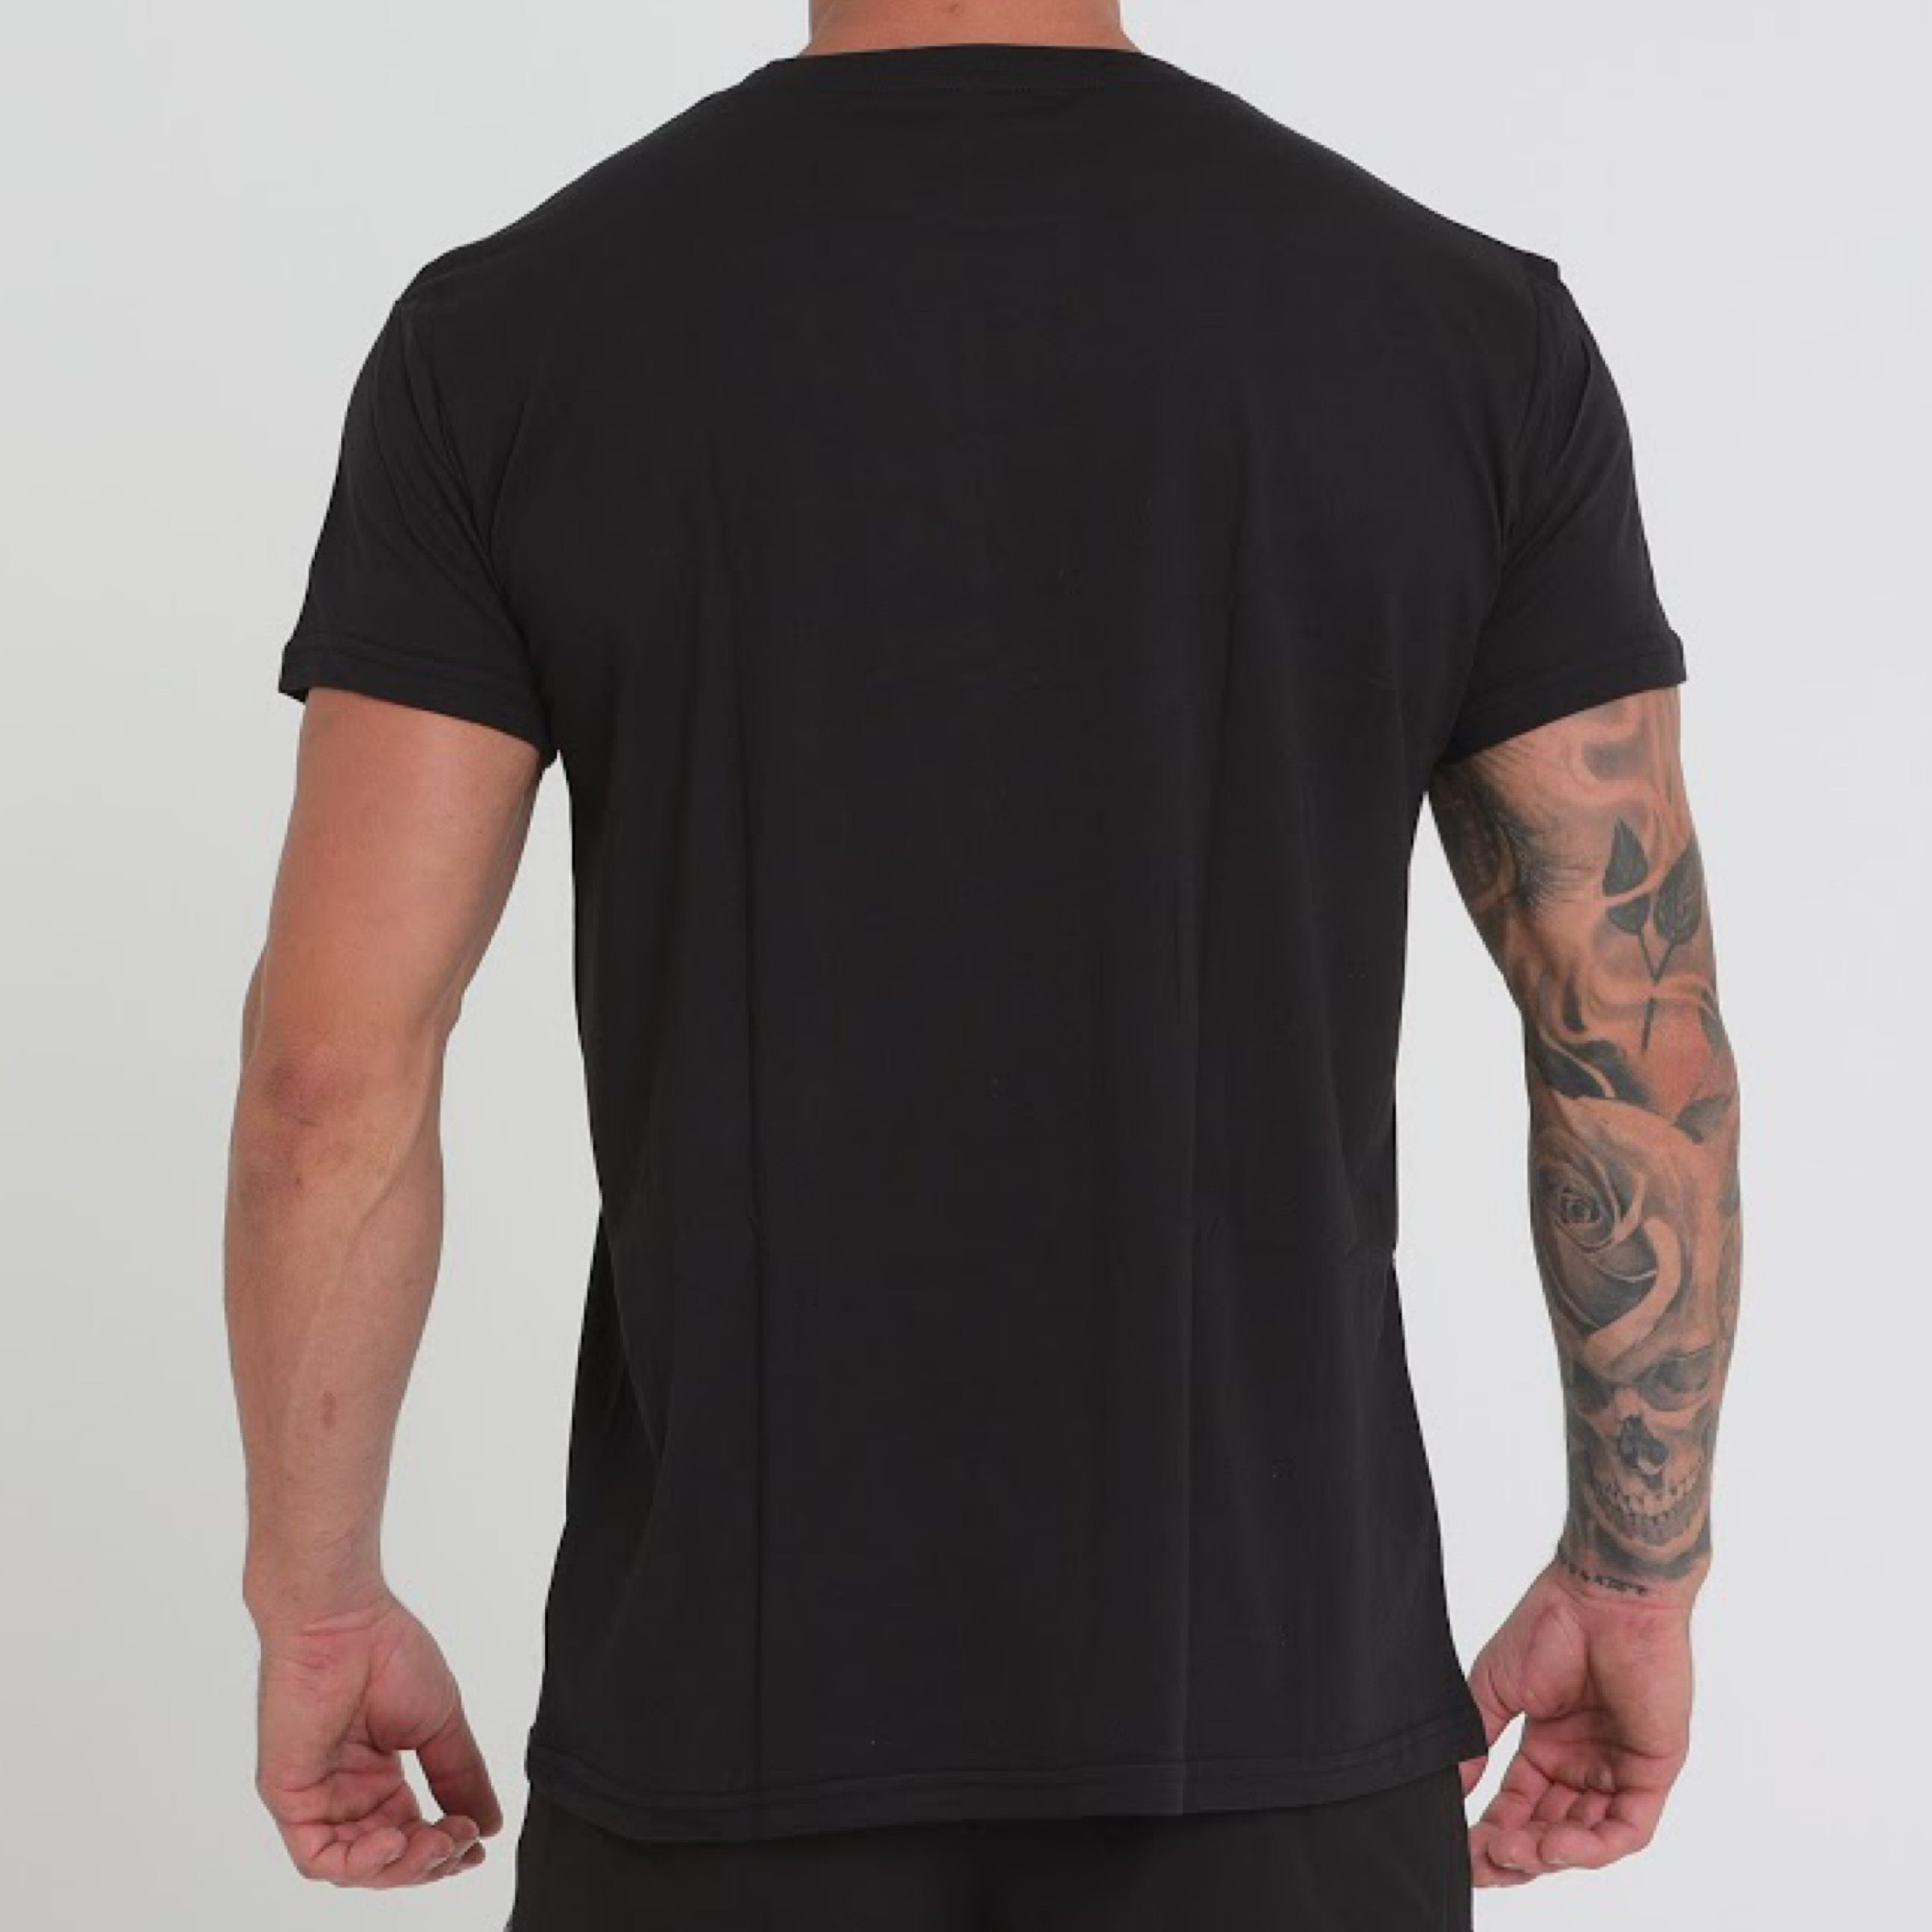 BASE T-SHIRT Black